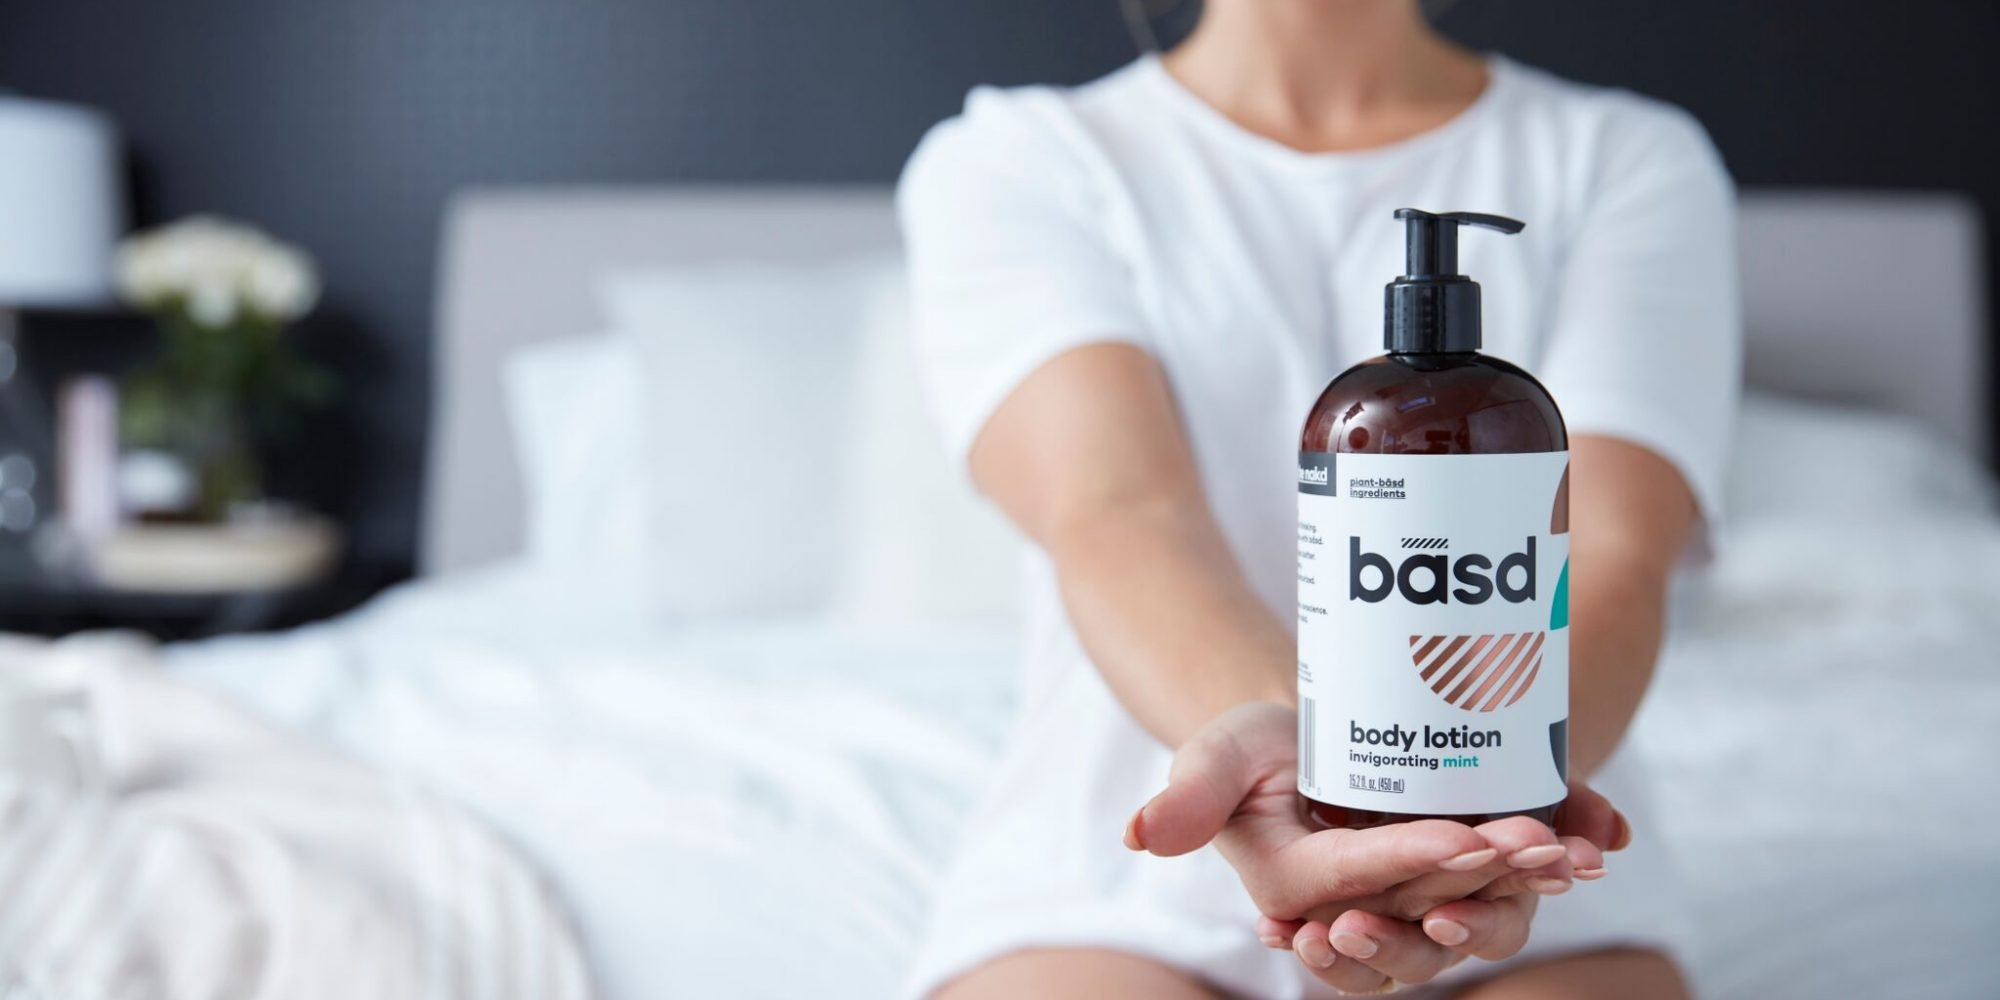 Genuine Health Acquires Growing Natural Body Care Brand Basd